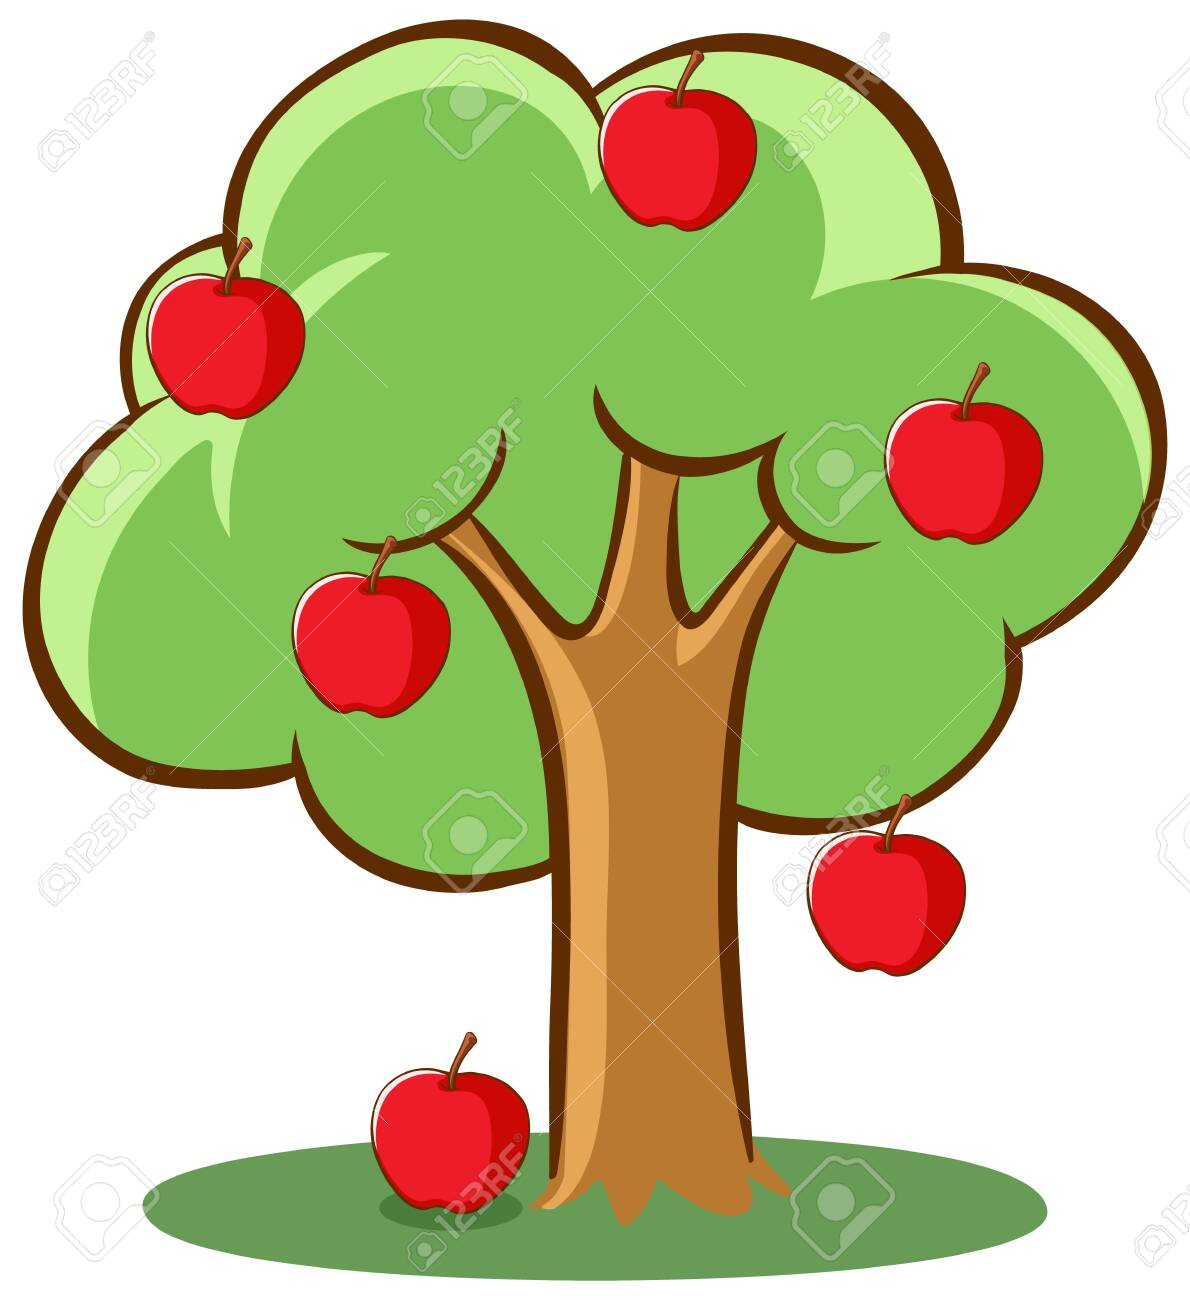 Apple Tree On White Background Illustration Royalty Free Cliparts Vectors And Stock Illustration Image 134686793